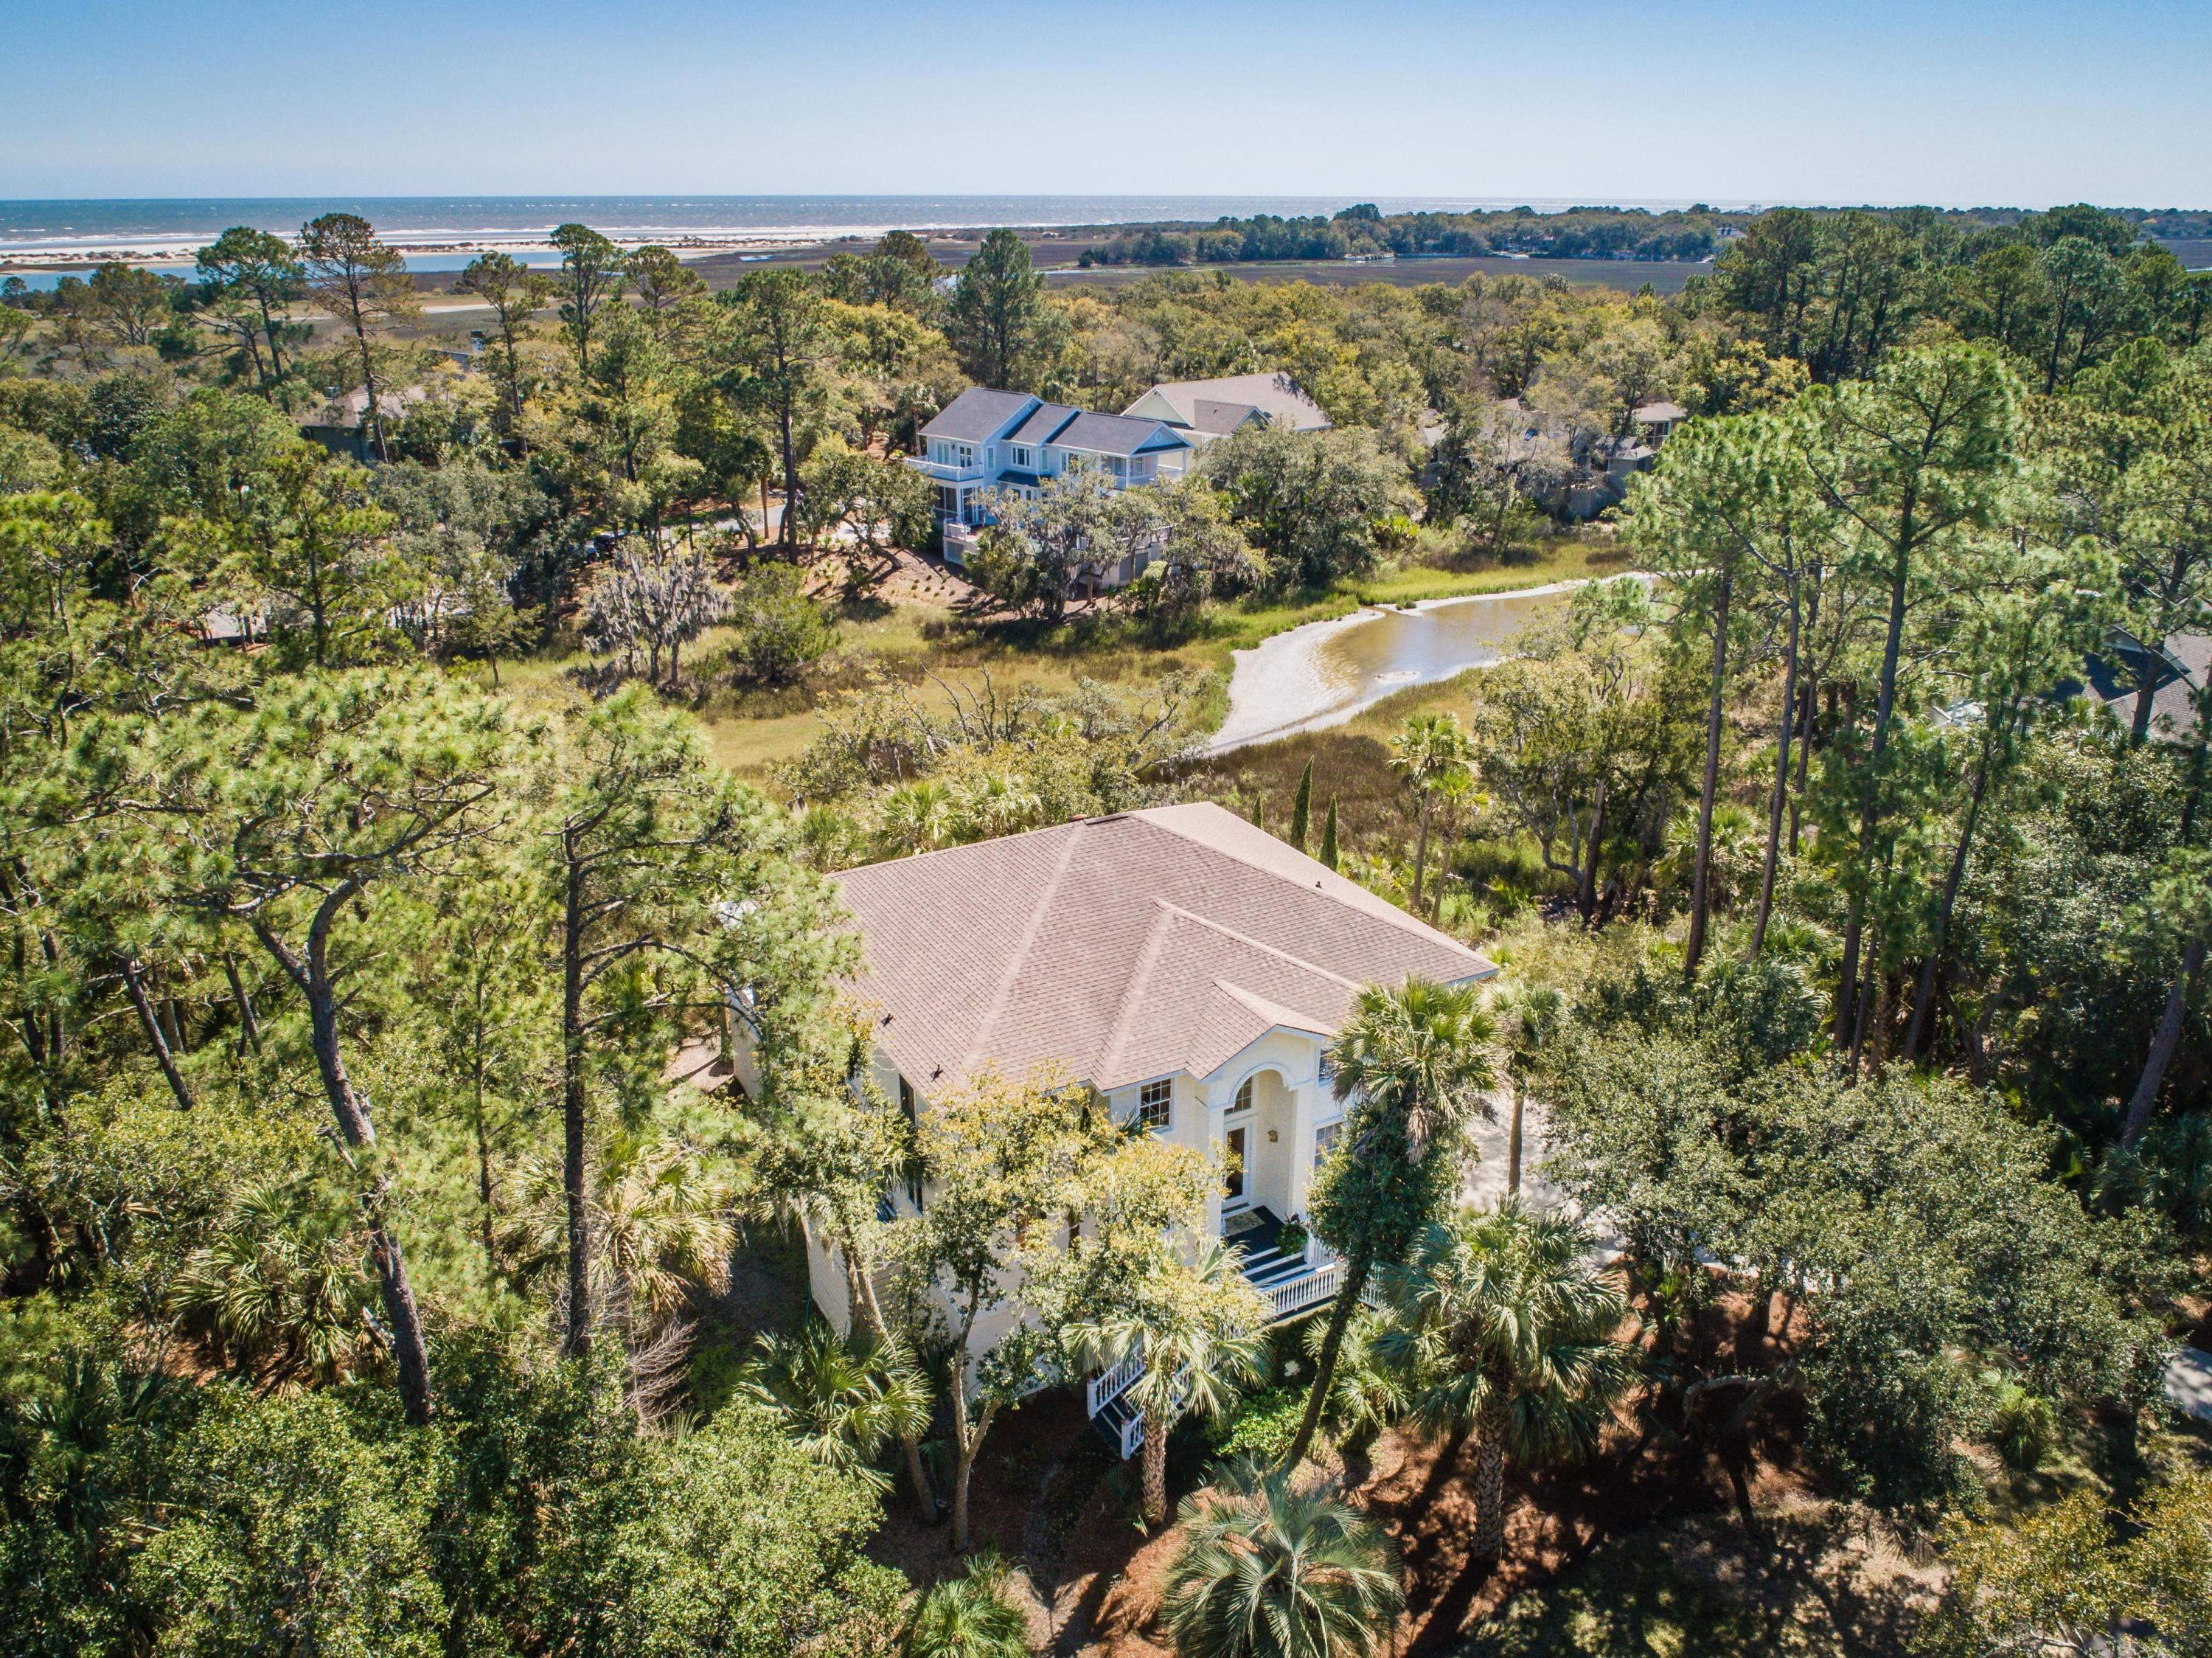 Seabrook Island Homes For Sale - 2957 Deer Point, Seabrook Island, SC - 33